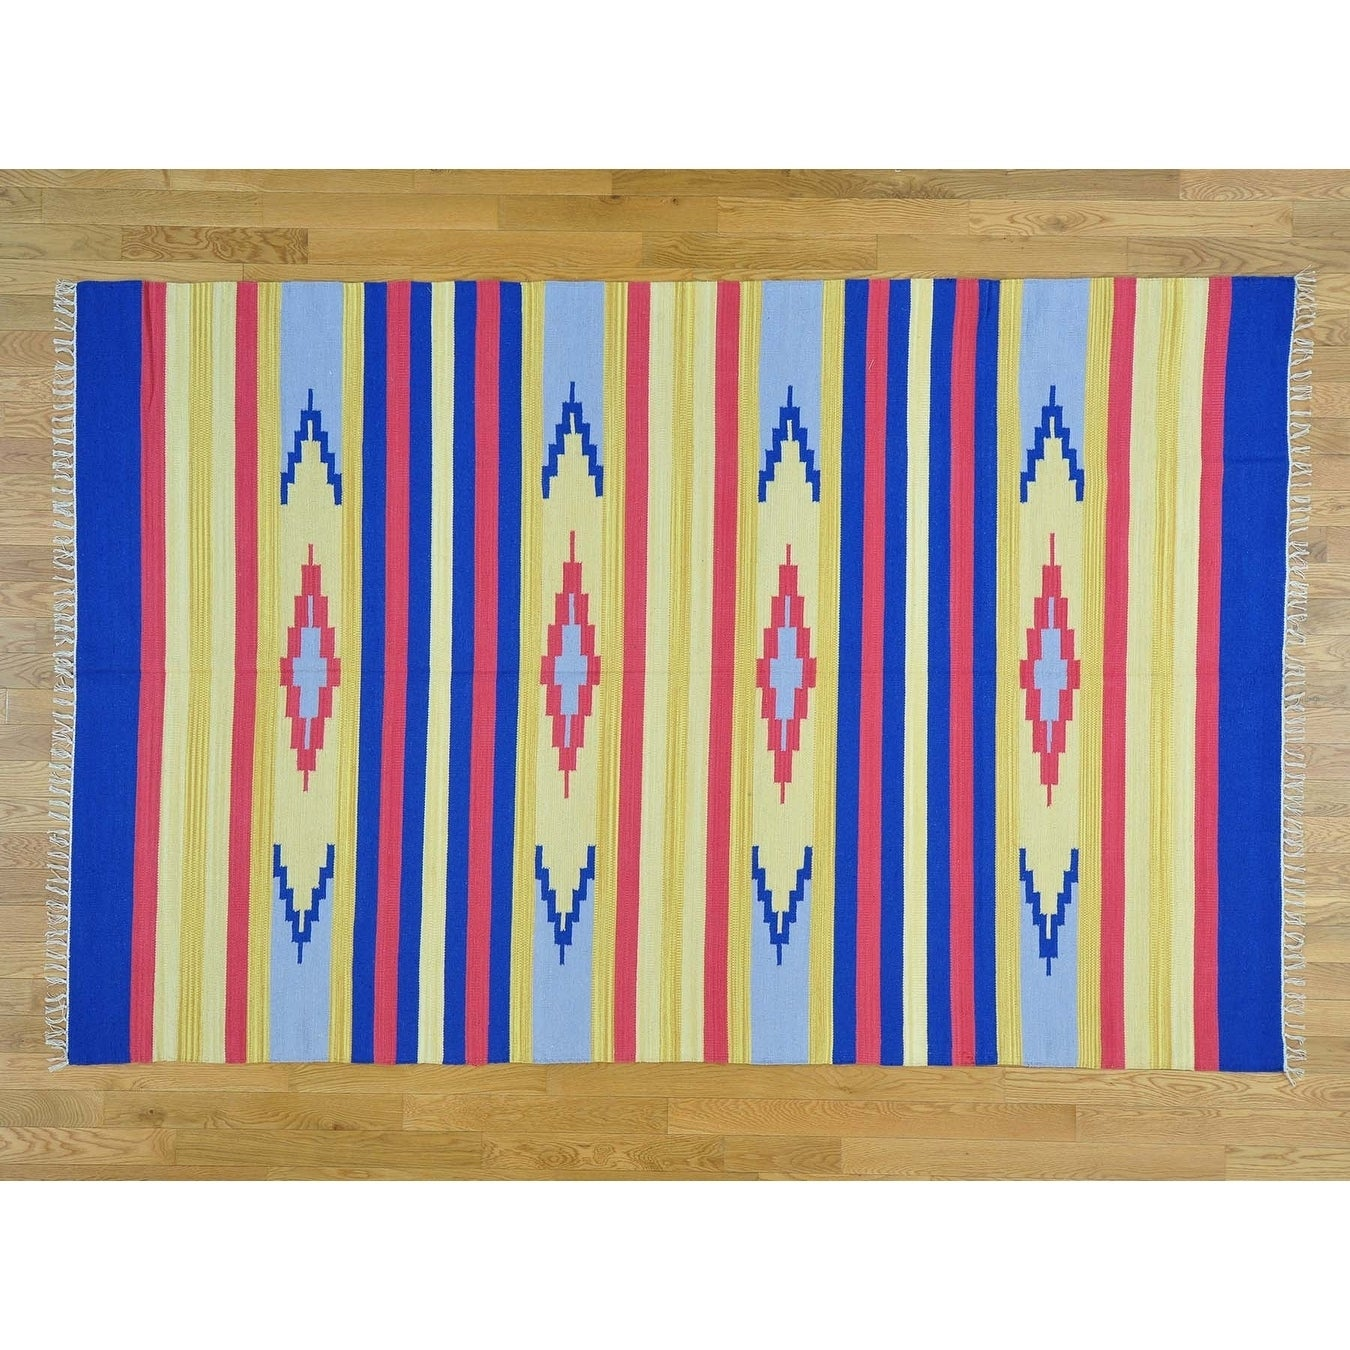 Hand Knotted Multicolored Flat Weave with Cotton Oriental Rug - 6' x 9'2